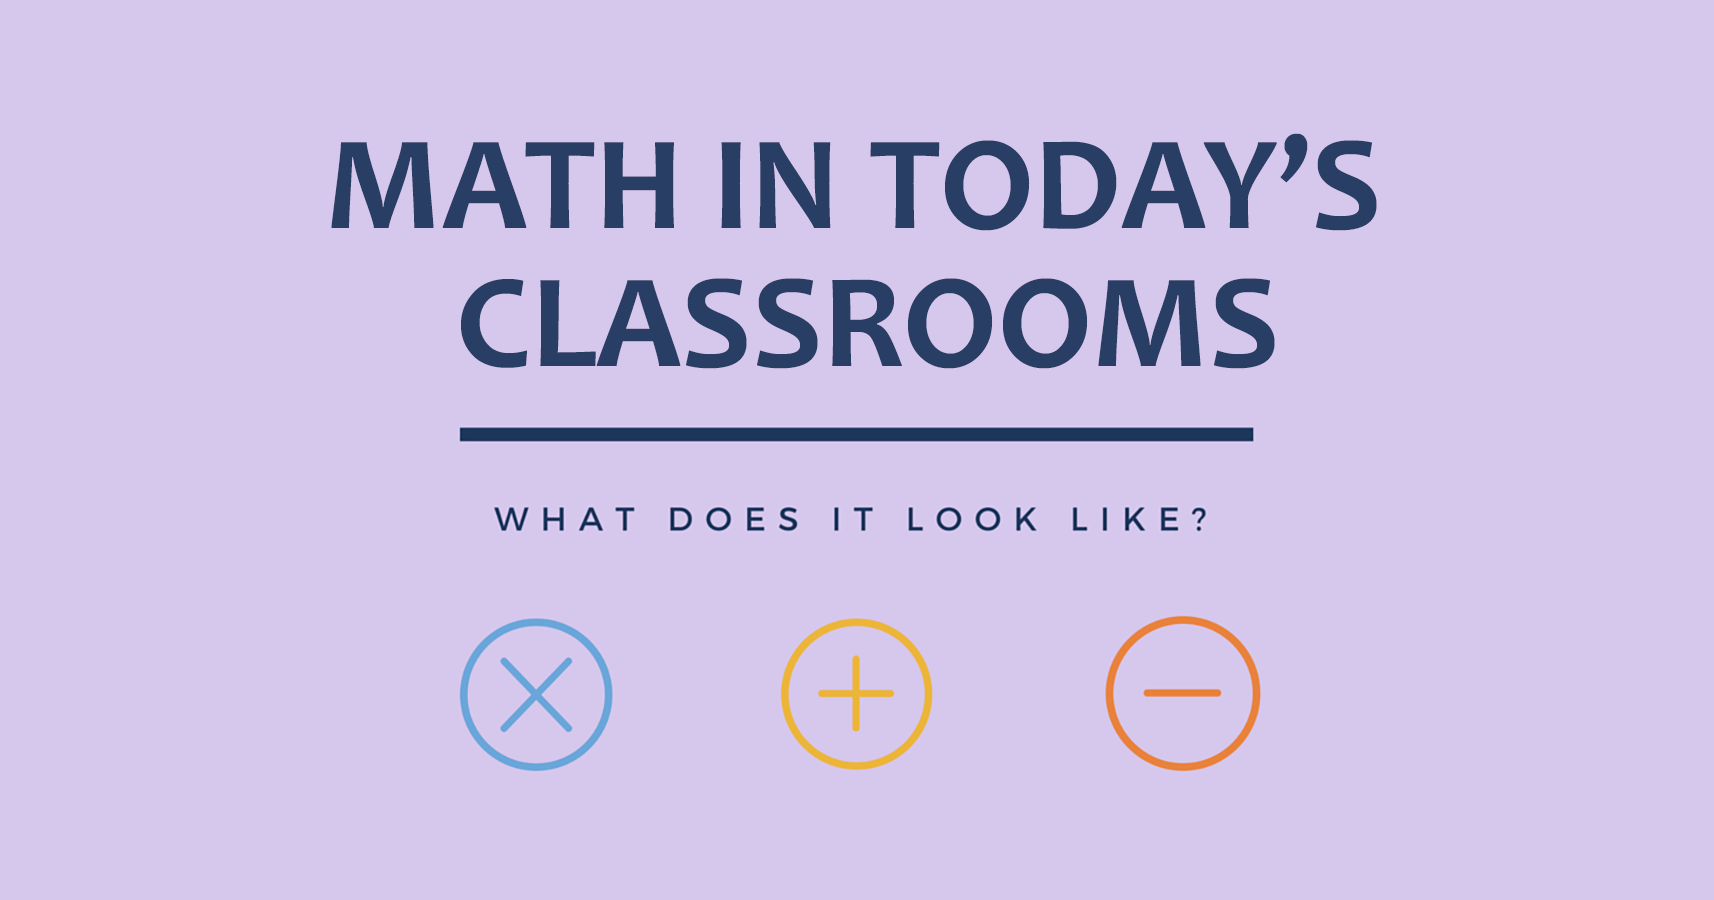 What Does Math Look Like In Today's Classroom?